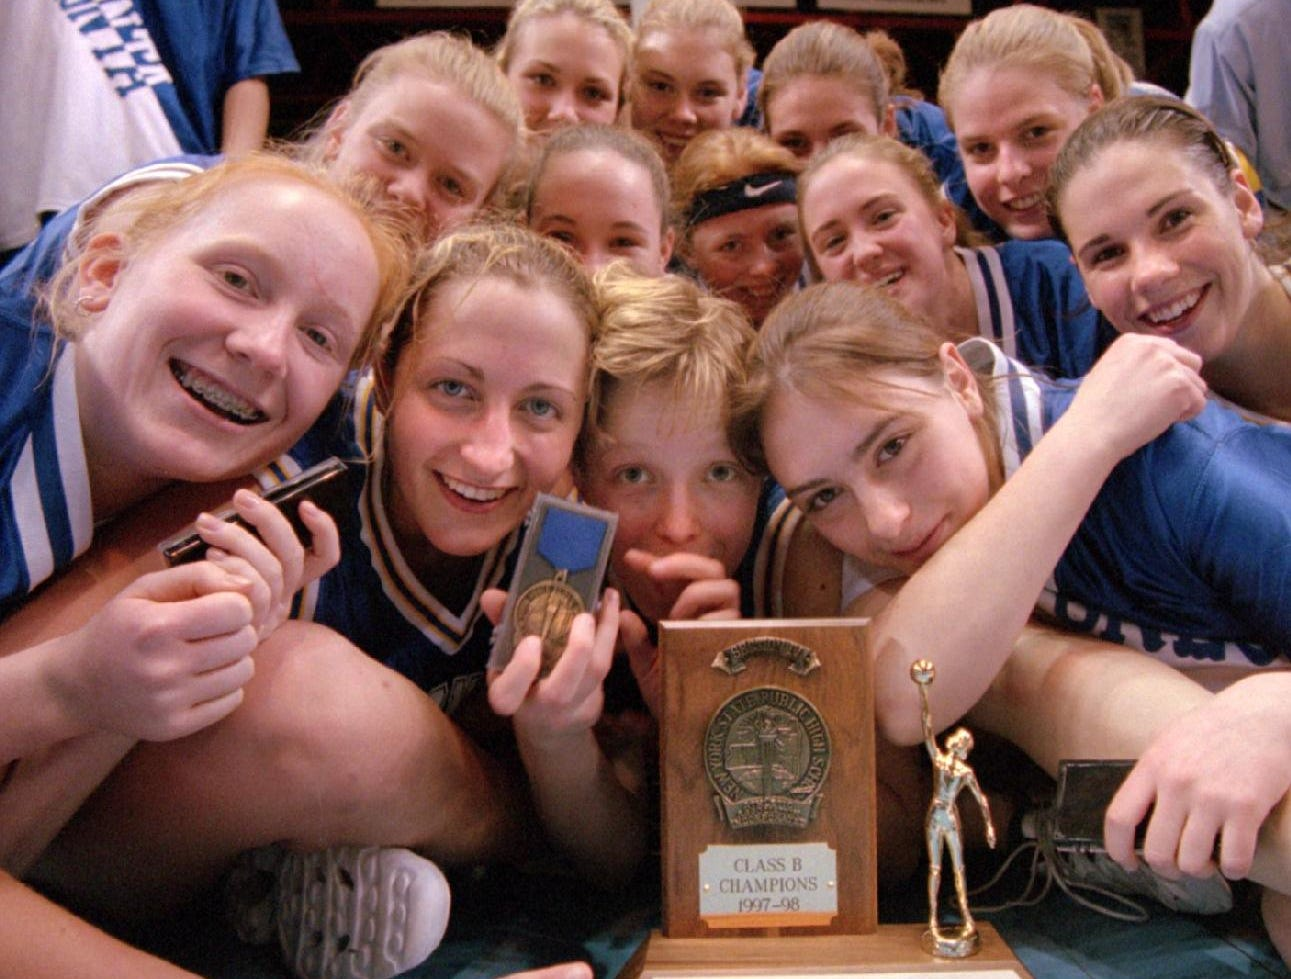 1998: The Class B Sectional Champions the Oneonta Yellow Jacket Girls Varsity Basketball team mugs for the camera after their 61 to 43 victory over the Maine-Endwell Spartans.